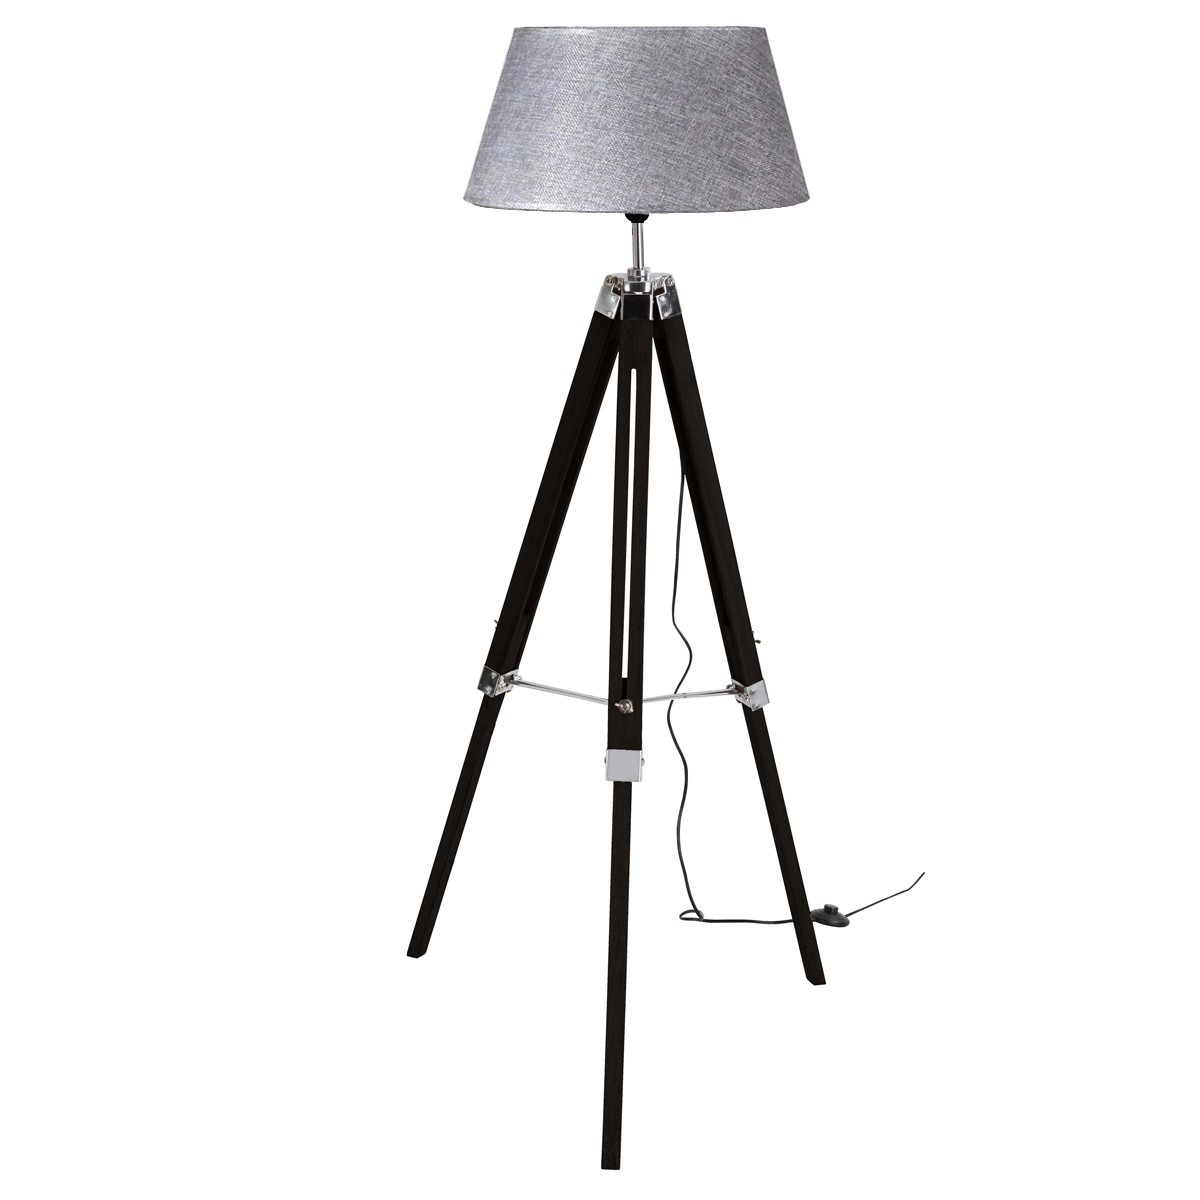 lampadaire tr pied navy noir et gris koya design. Black Bedroom Furniture Sets. Home Design Ideas